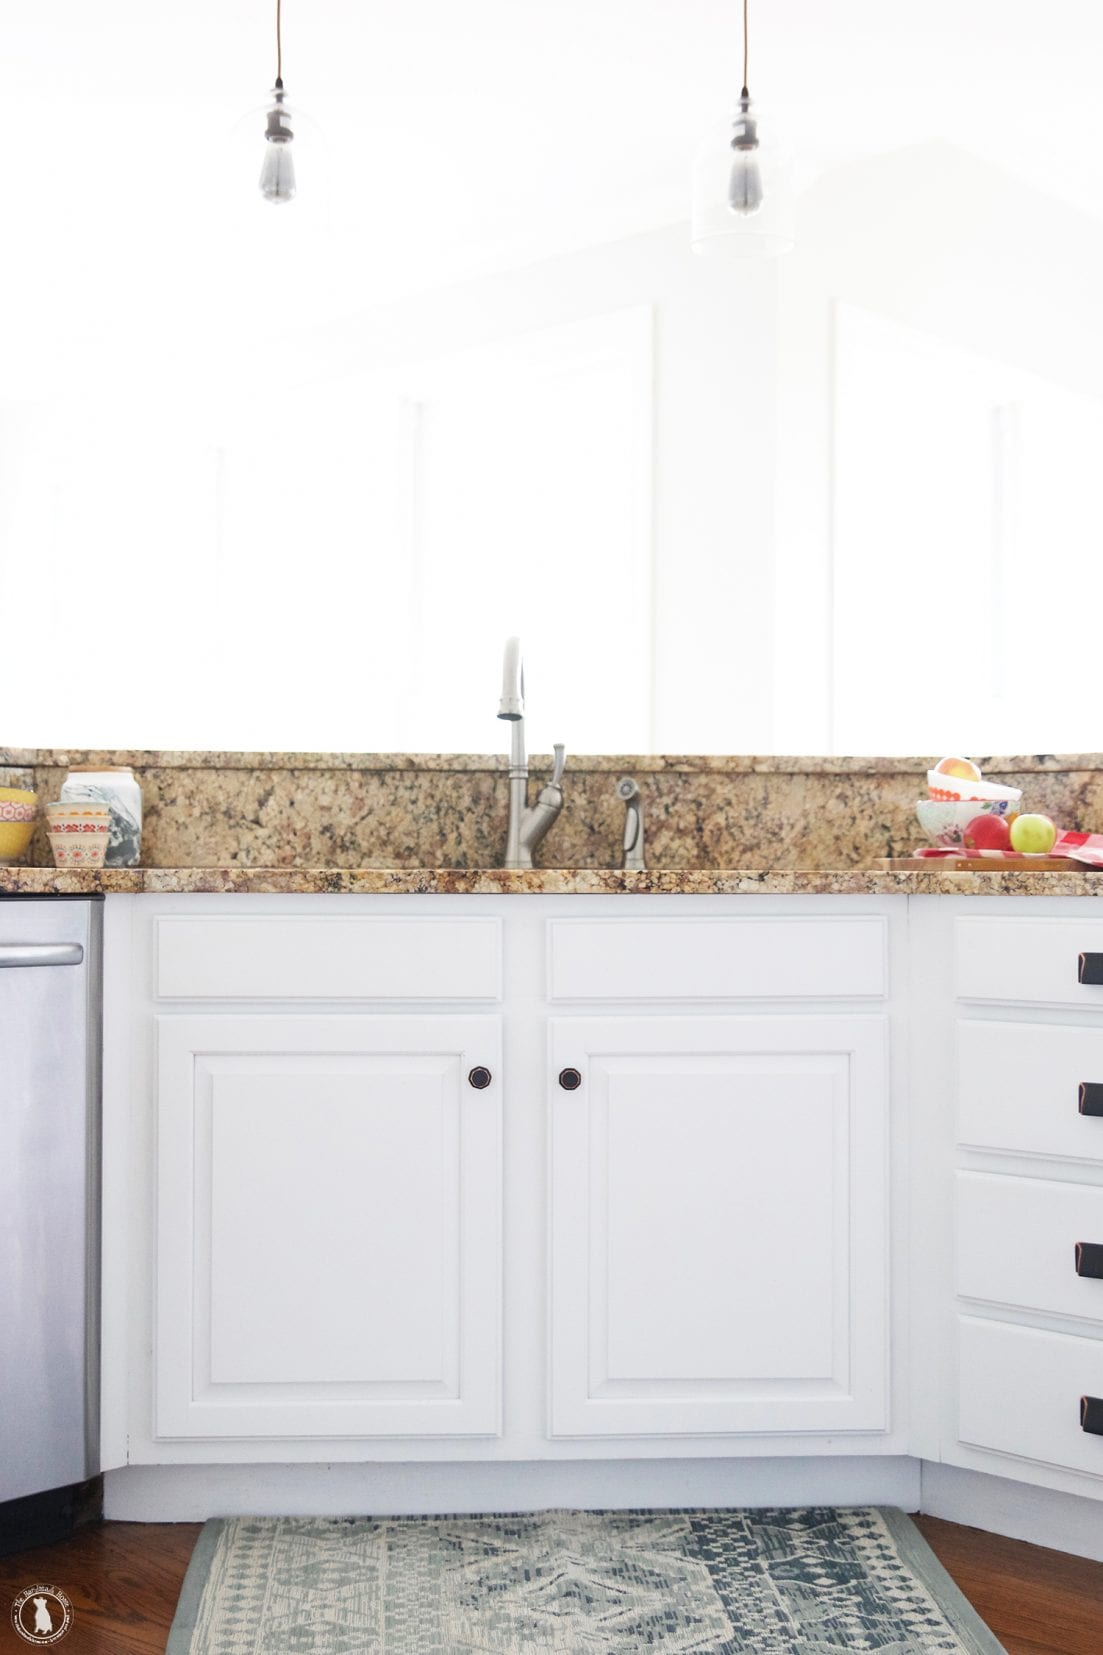 Kitchen Redo Small Changes With Big Impact The Handmade